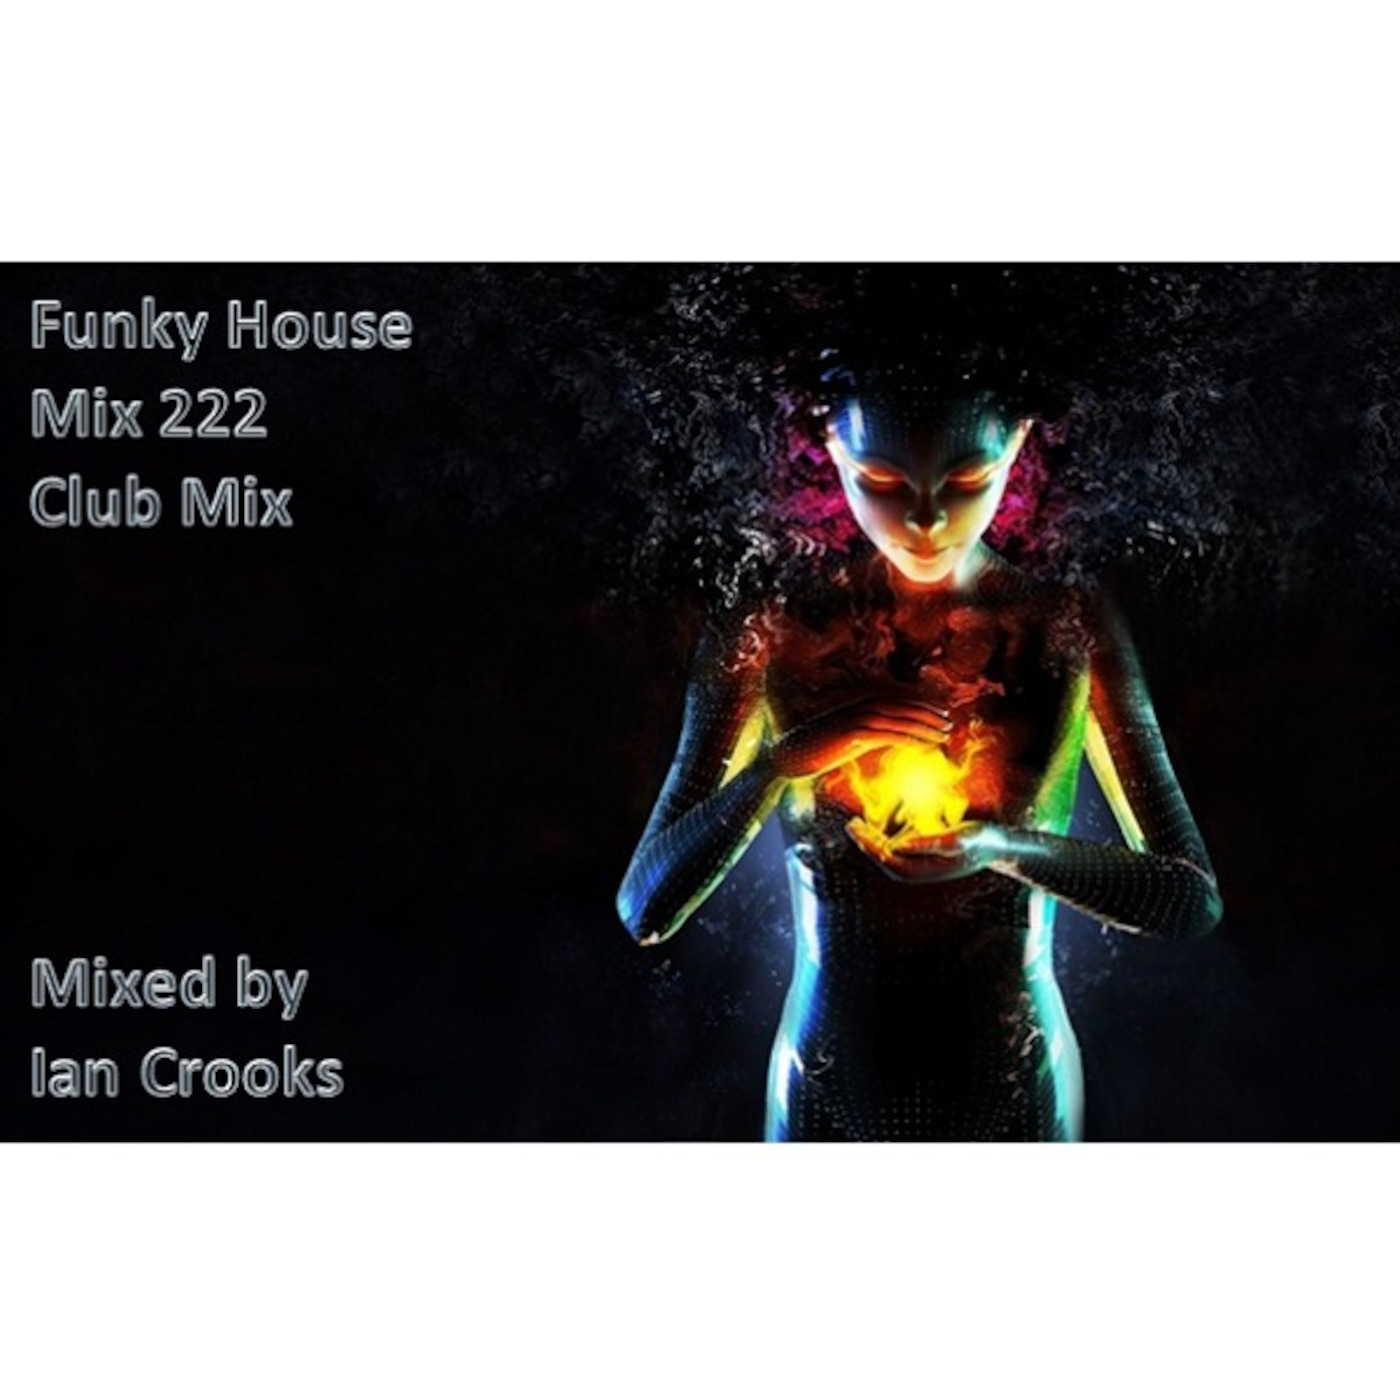 Funky house mix 222 club mix funky house mixes podcast for Funky house music classics